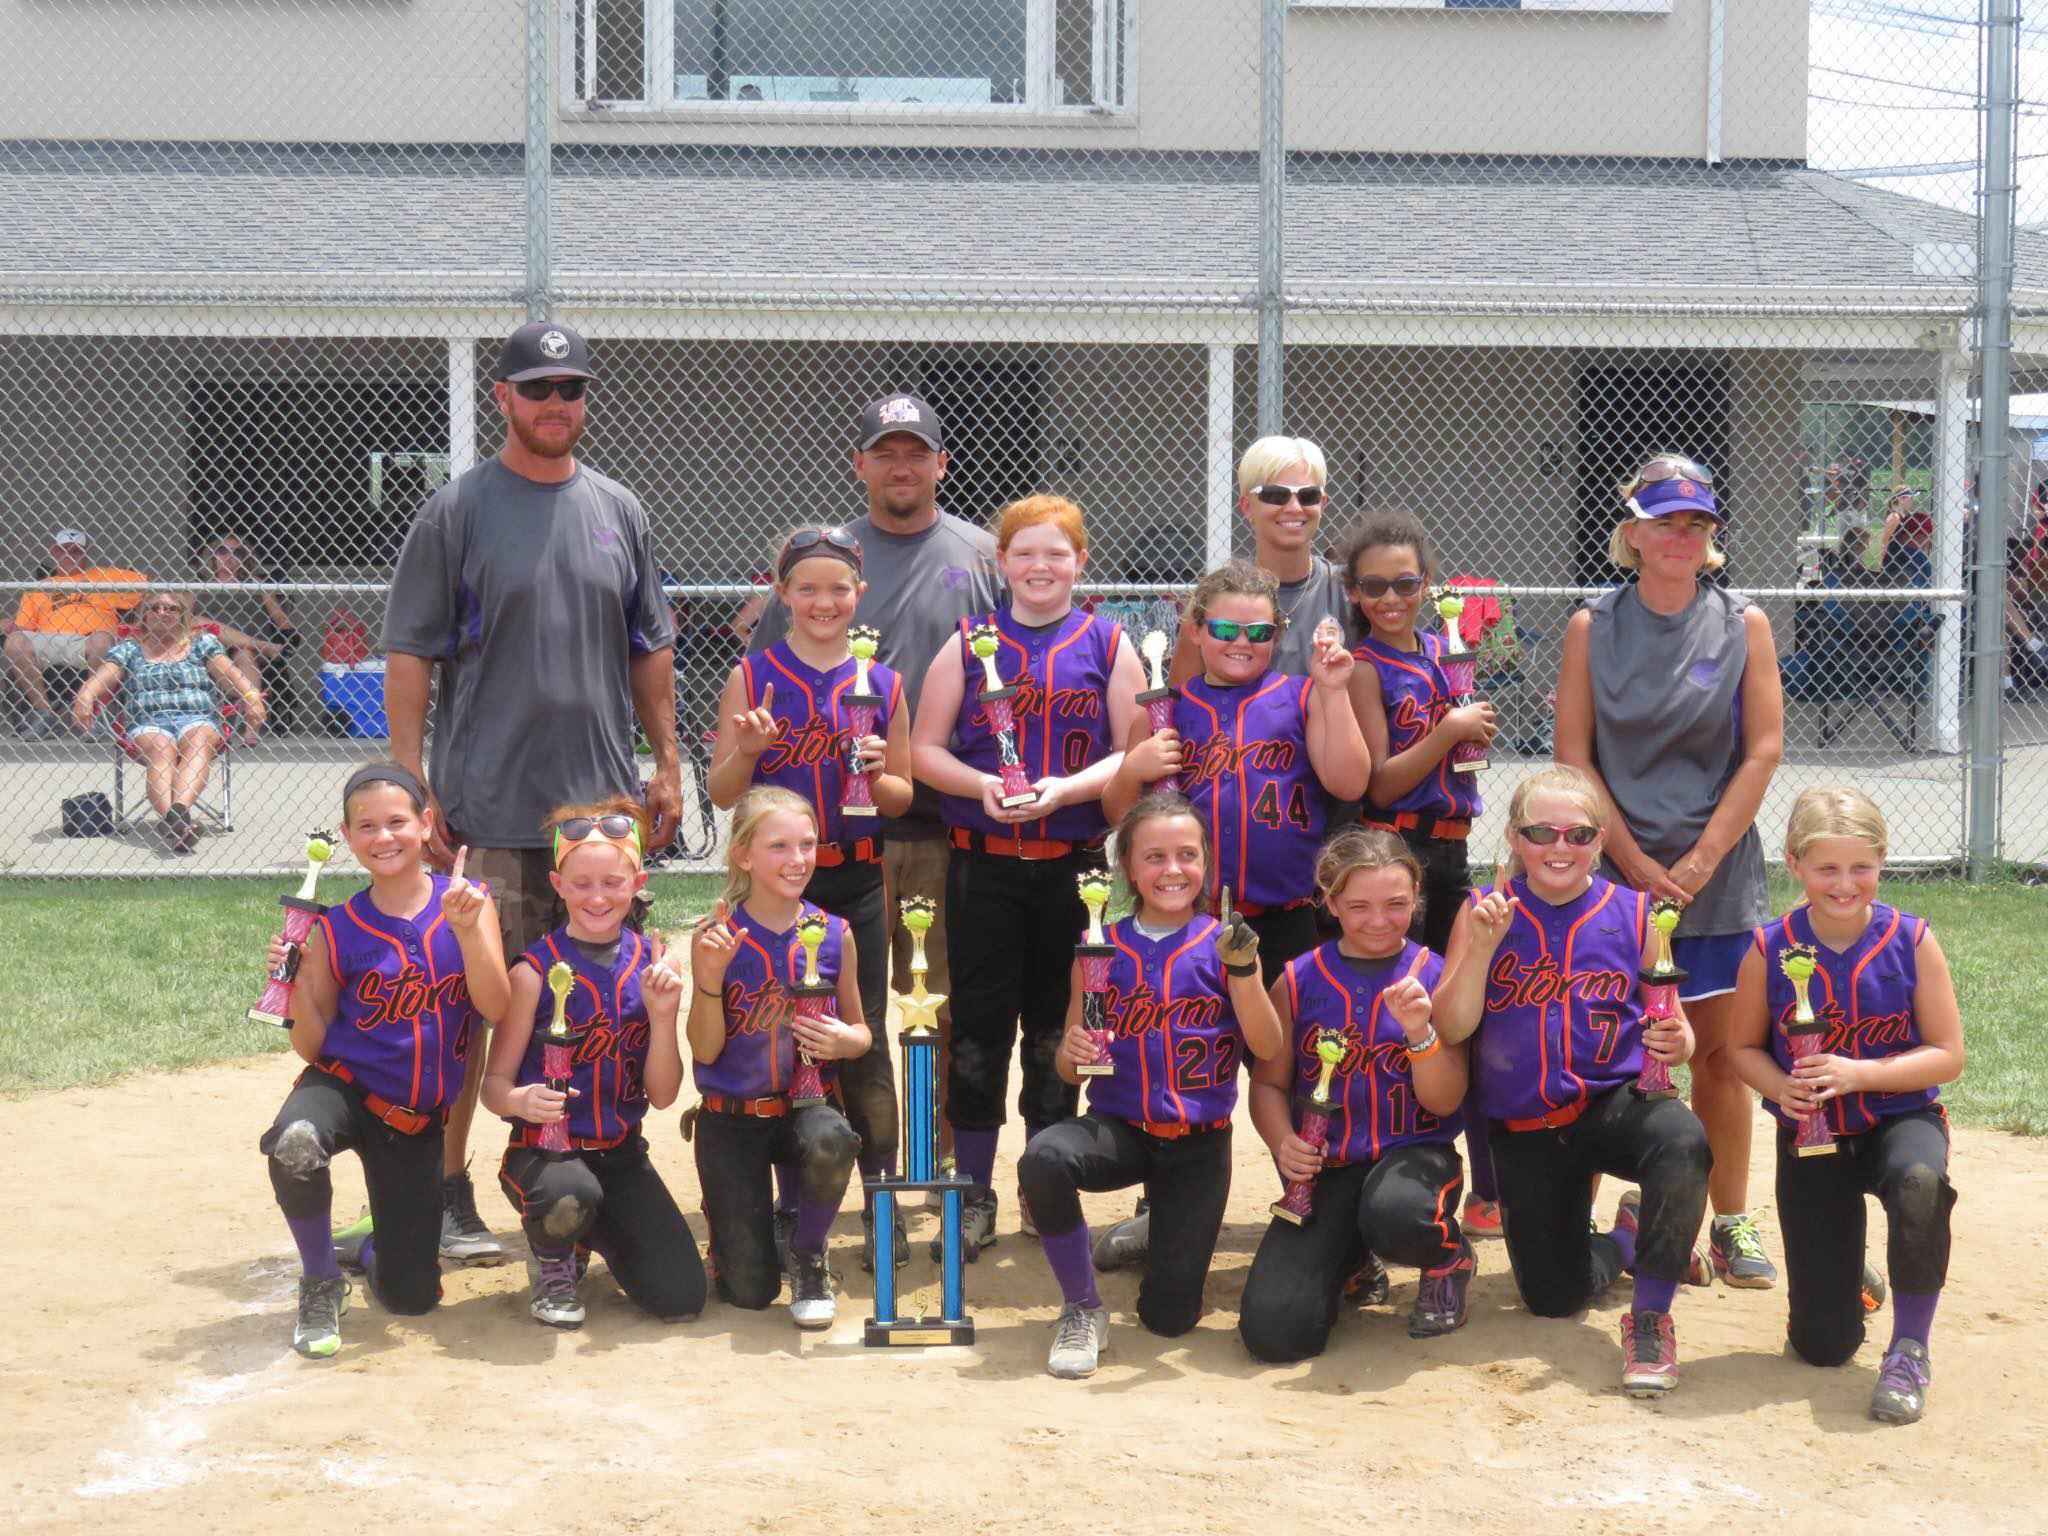 10u Wins in Batesville IN